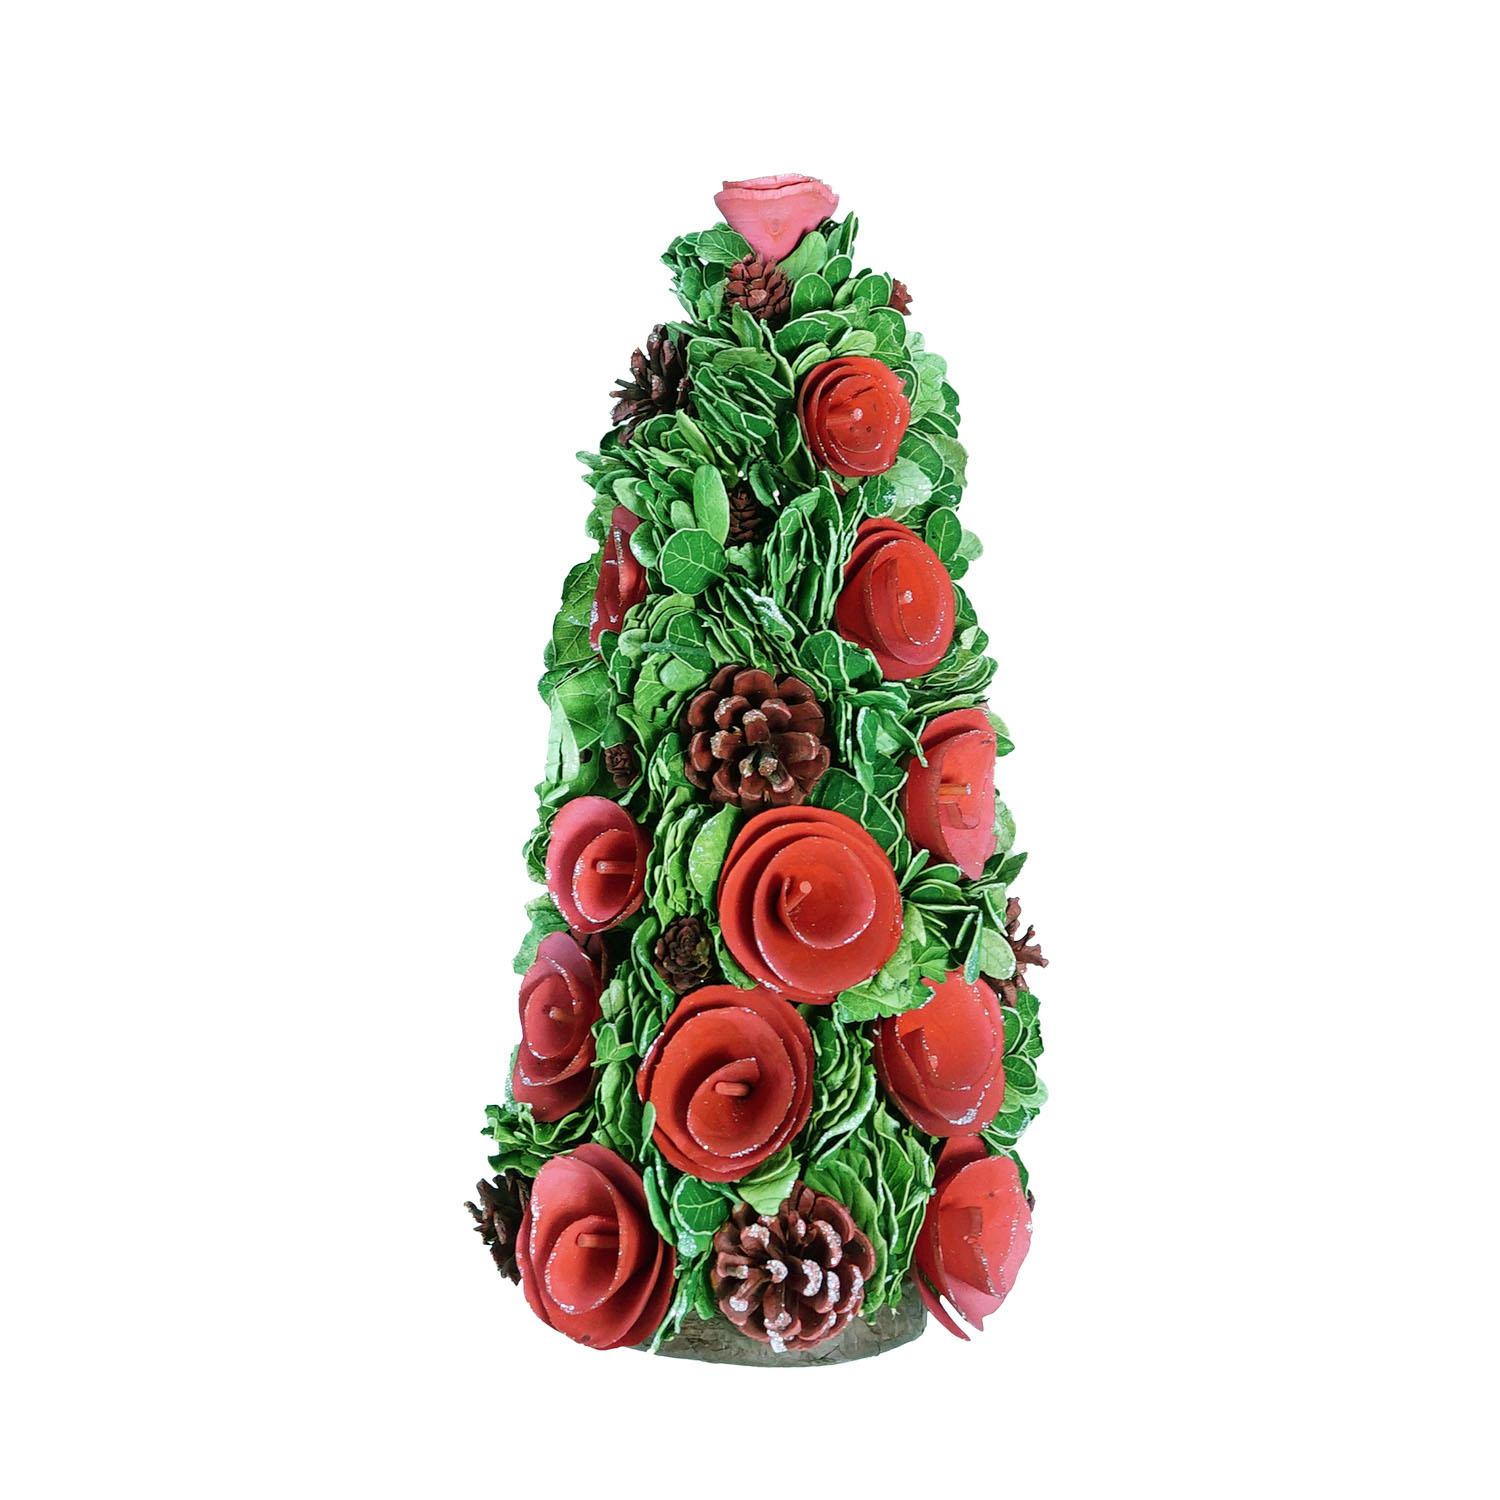 Northlight 15.75 in. Red Wood Rose Flower and Pine Cones Christmas Tree Decoration